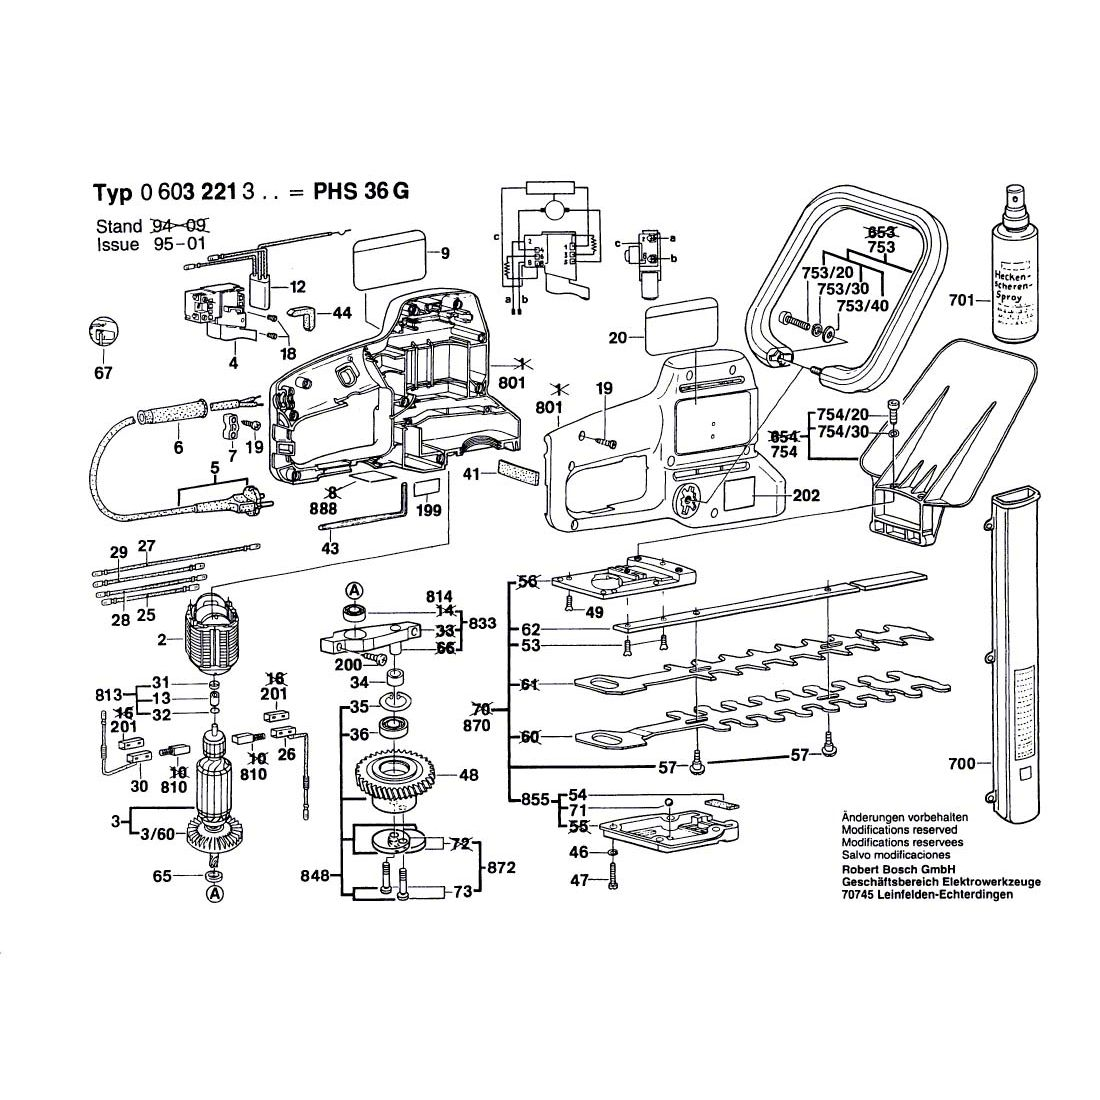 Buy A Bosch PHS 36 G Guide 2601038032 Spare Part Tye: 0